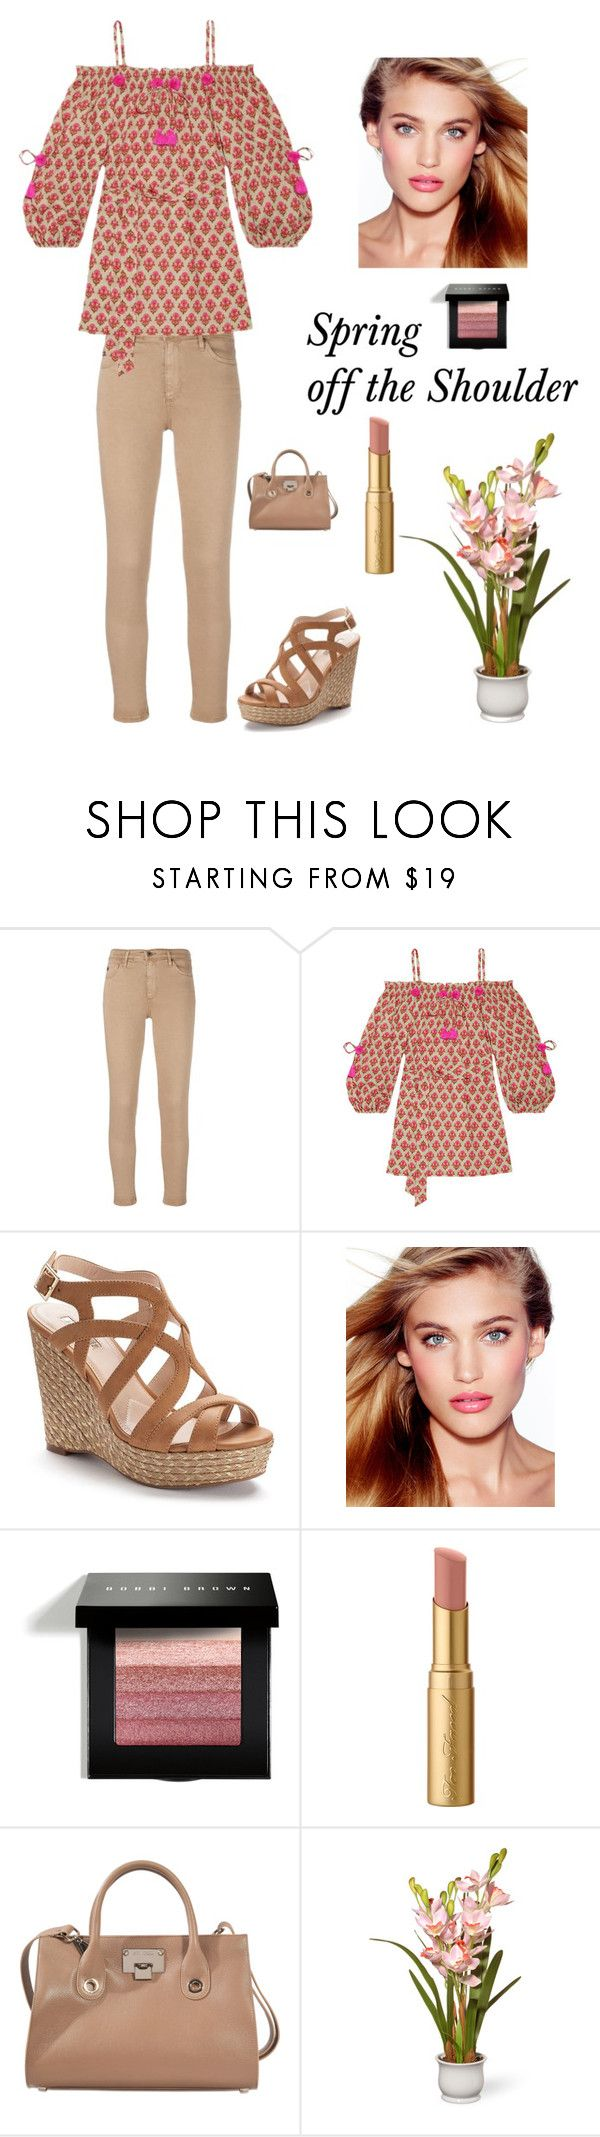 """Spring"" by kotnourka ❤ liked on Polyvore featuring AG Adriano Goldschmied, Figue, Jennifer Lopez, Charlotte Tilbury, Bobbi Brown Cosmetics, Too Faced Cosmetics, Jimmy Choo and National Tree Company"